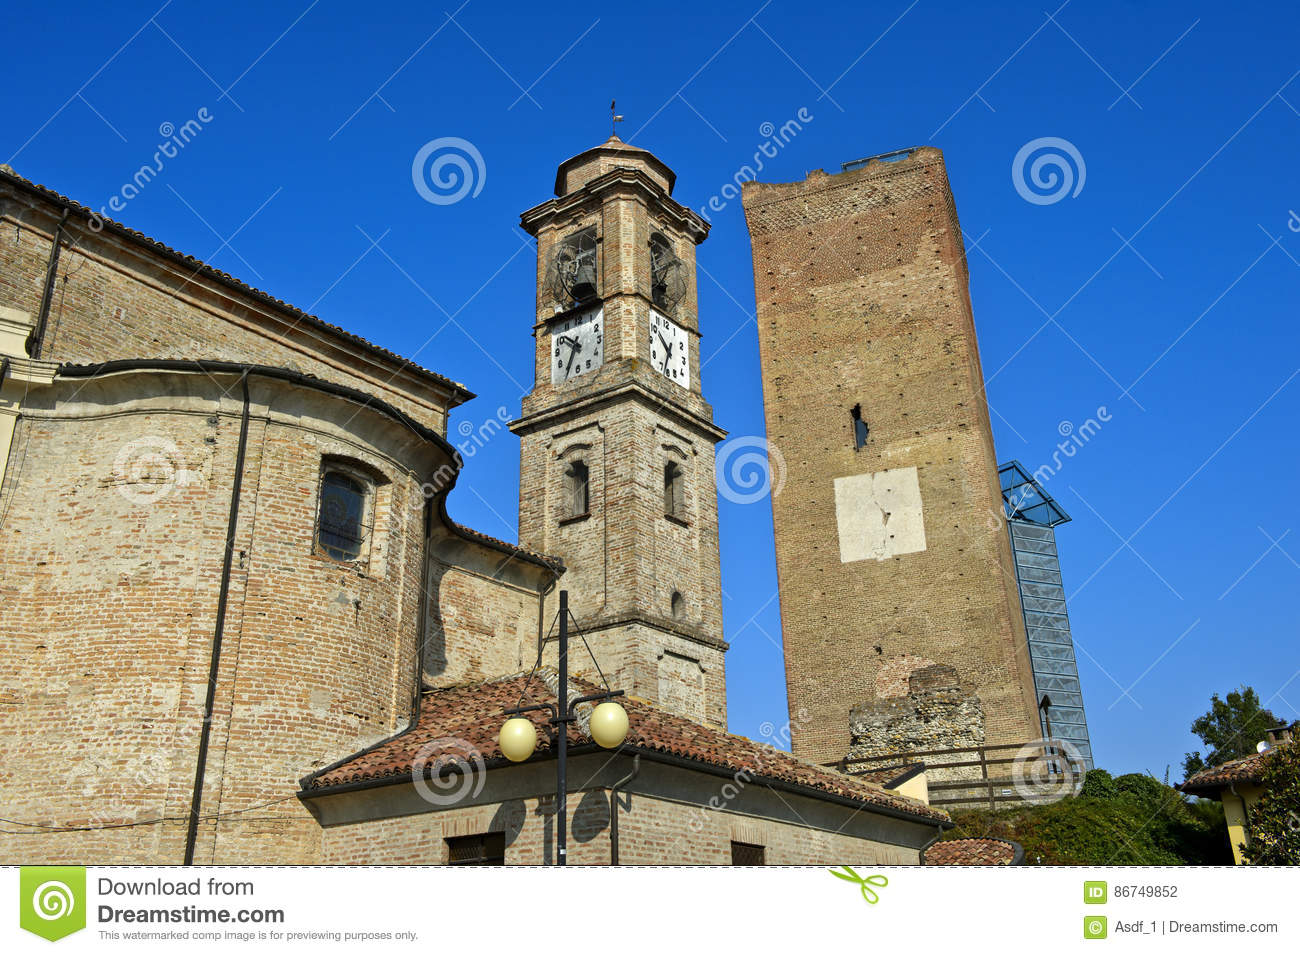 Spire of the San Giovanni Battista Church and the medieval watch tower, Barbaresco